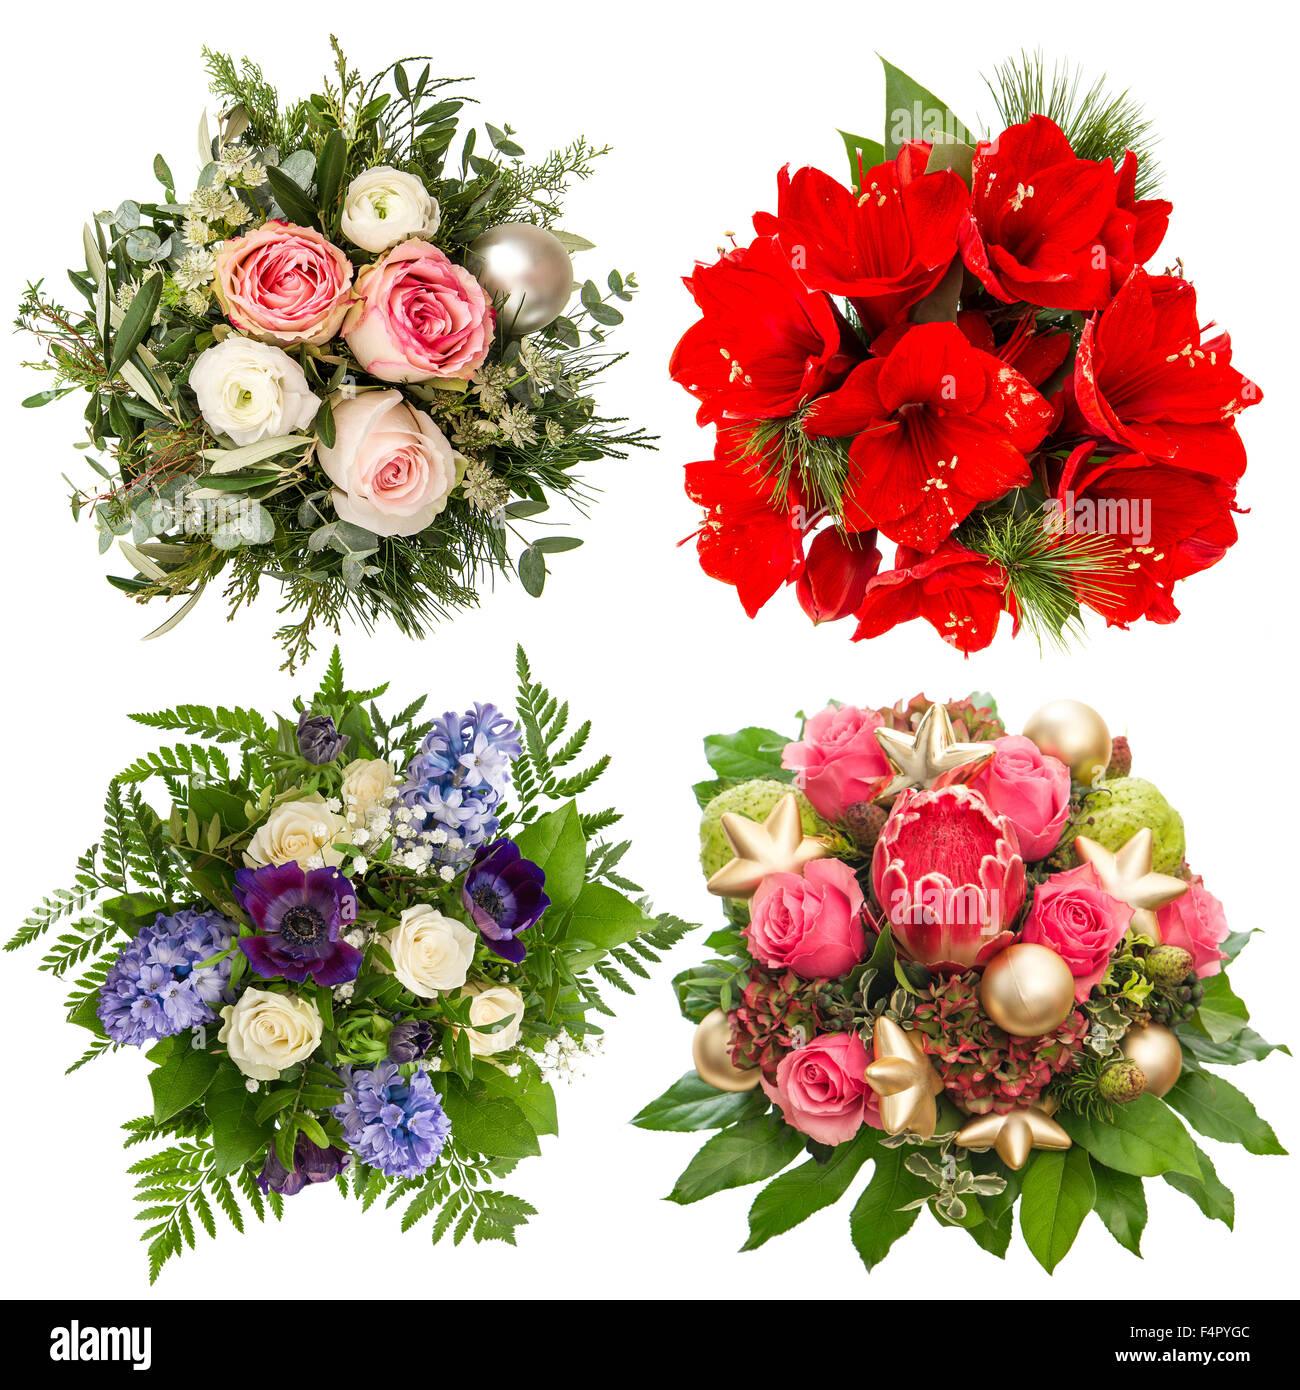 Flowers Bouquet For Christmas And New Year Holidays Roses Stock